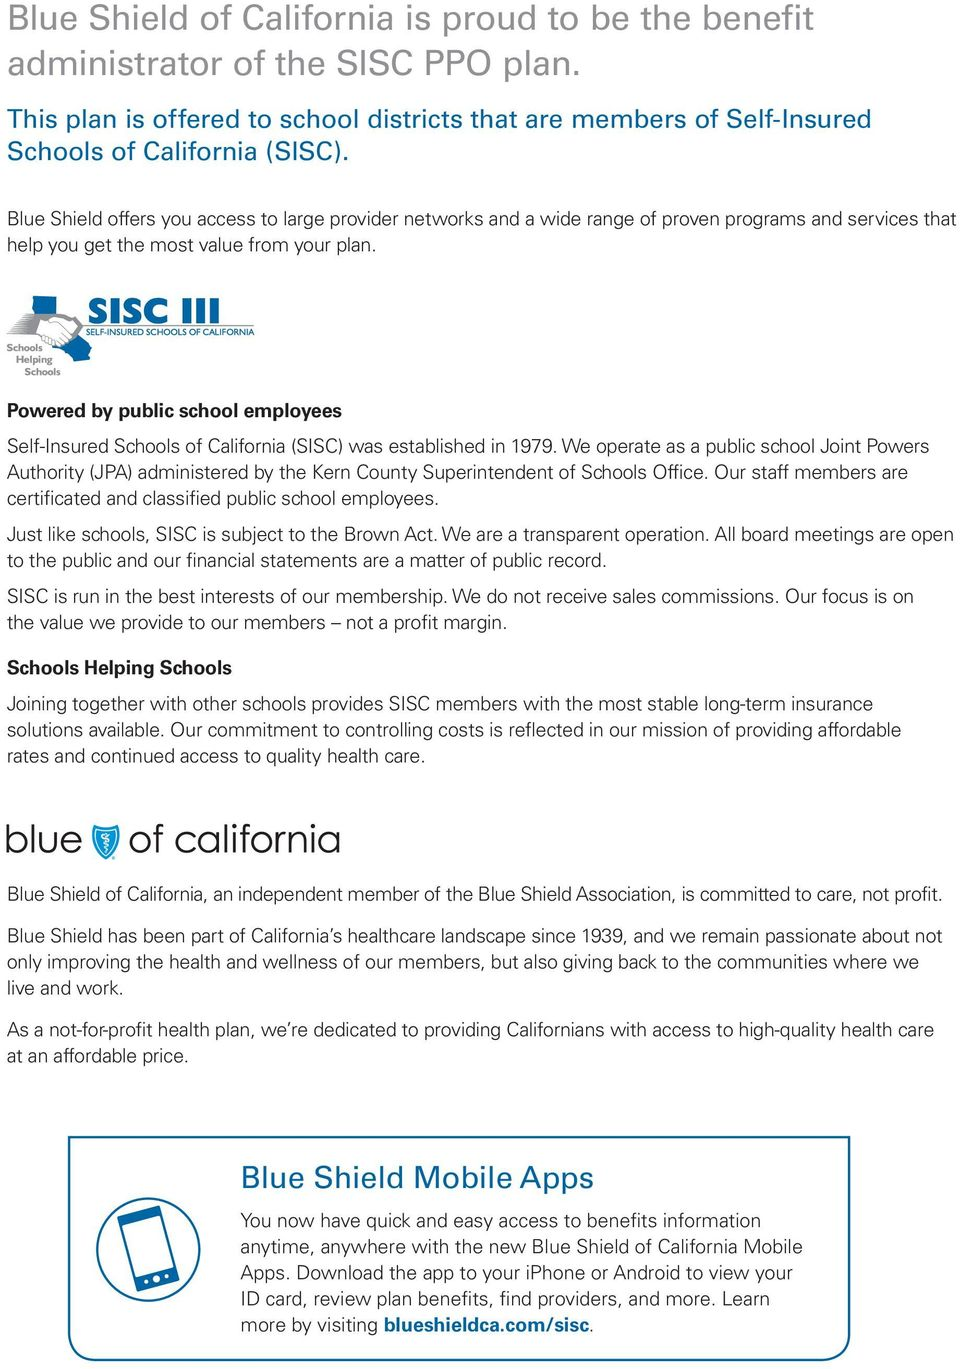 Blue Shield Of California Insurance Card | aesthetic caption